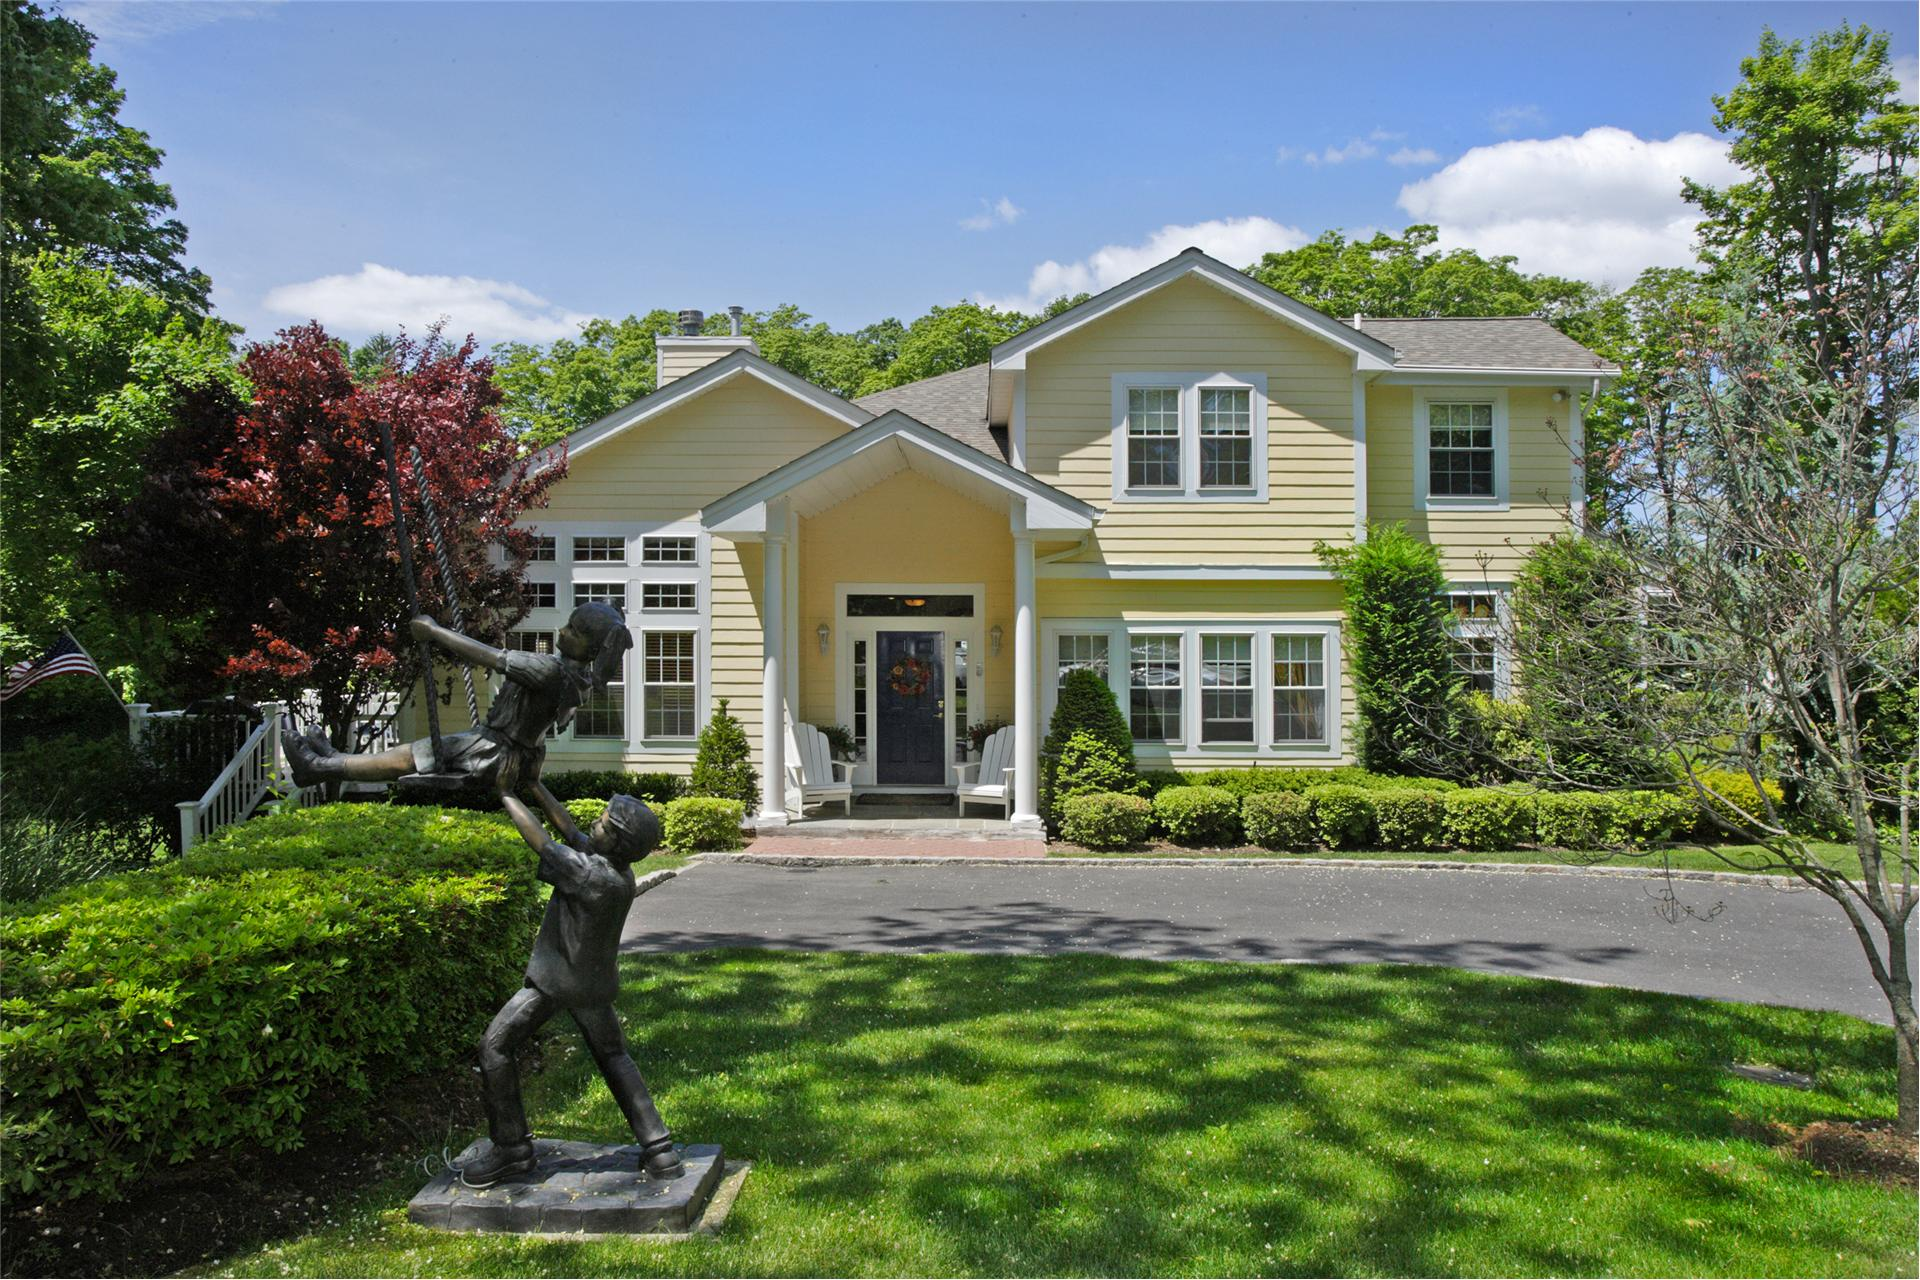 Single Family for Sale at 5 Hollow Way Glen Cove, New York 11542 United States